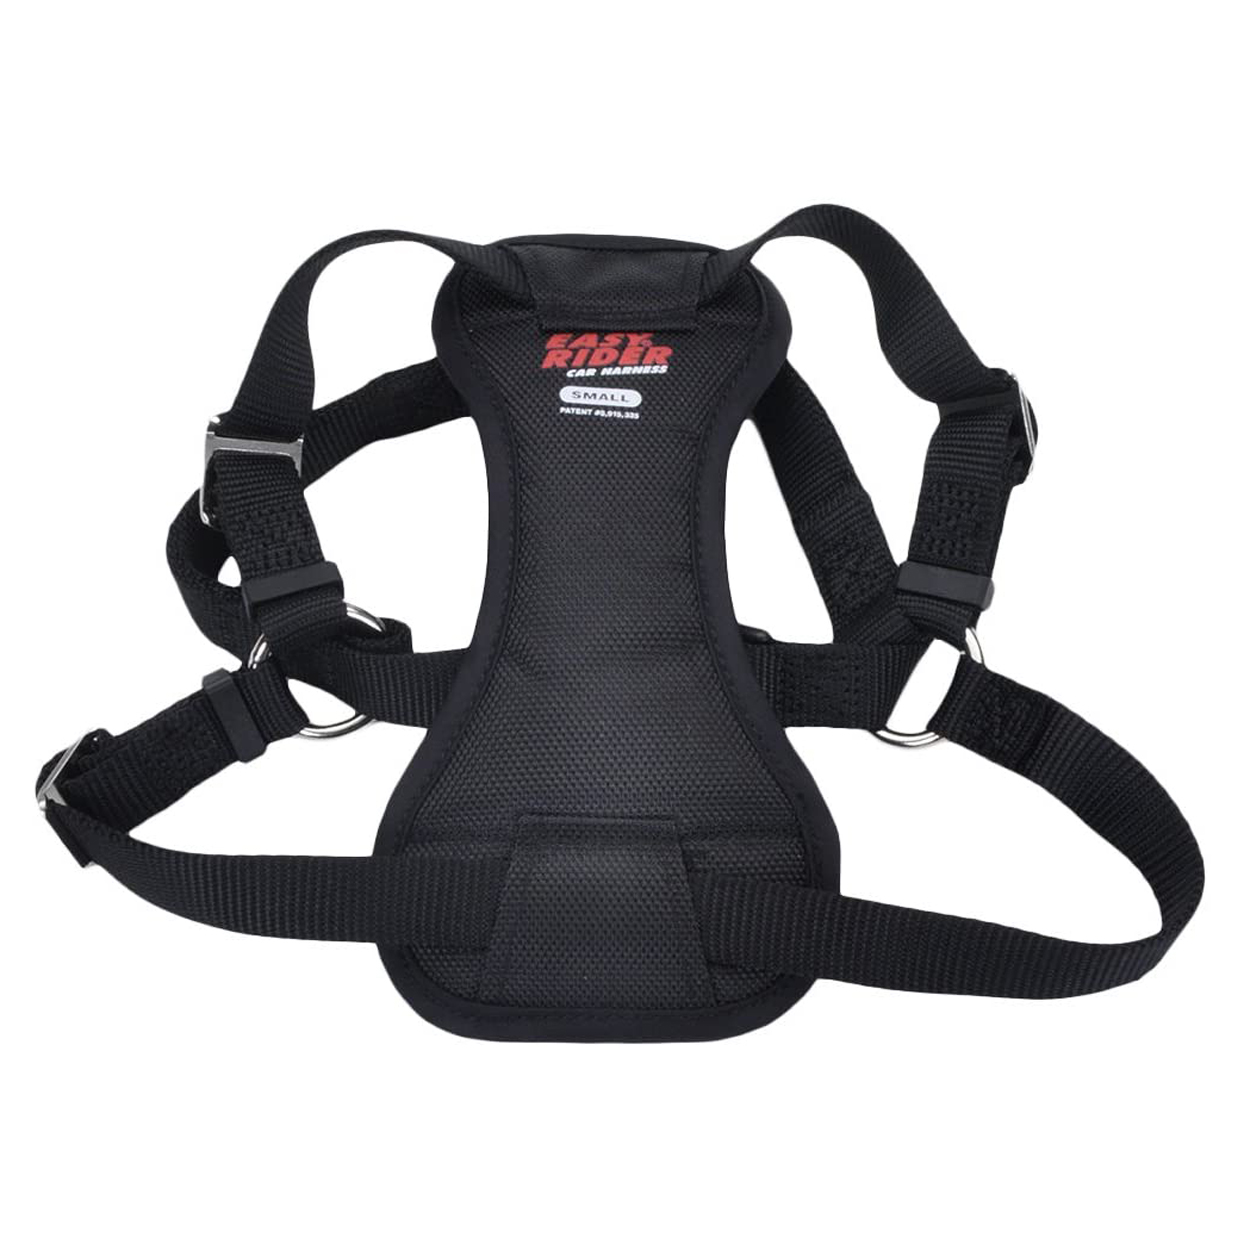 easy-rider-car-harness-for-dogs